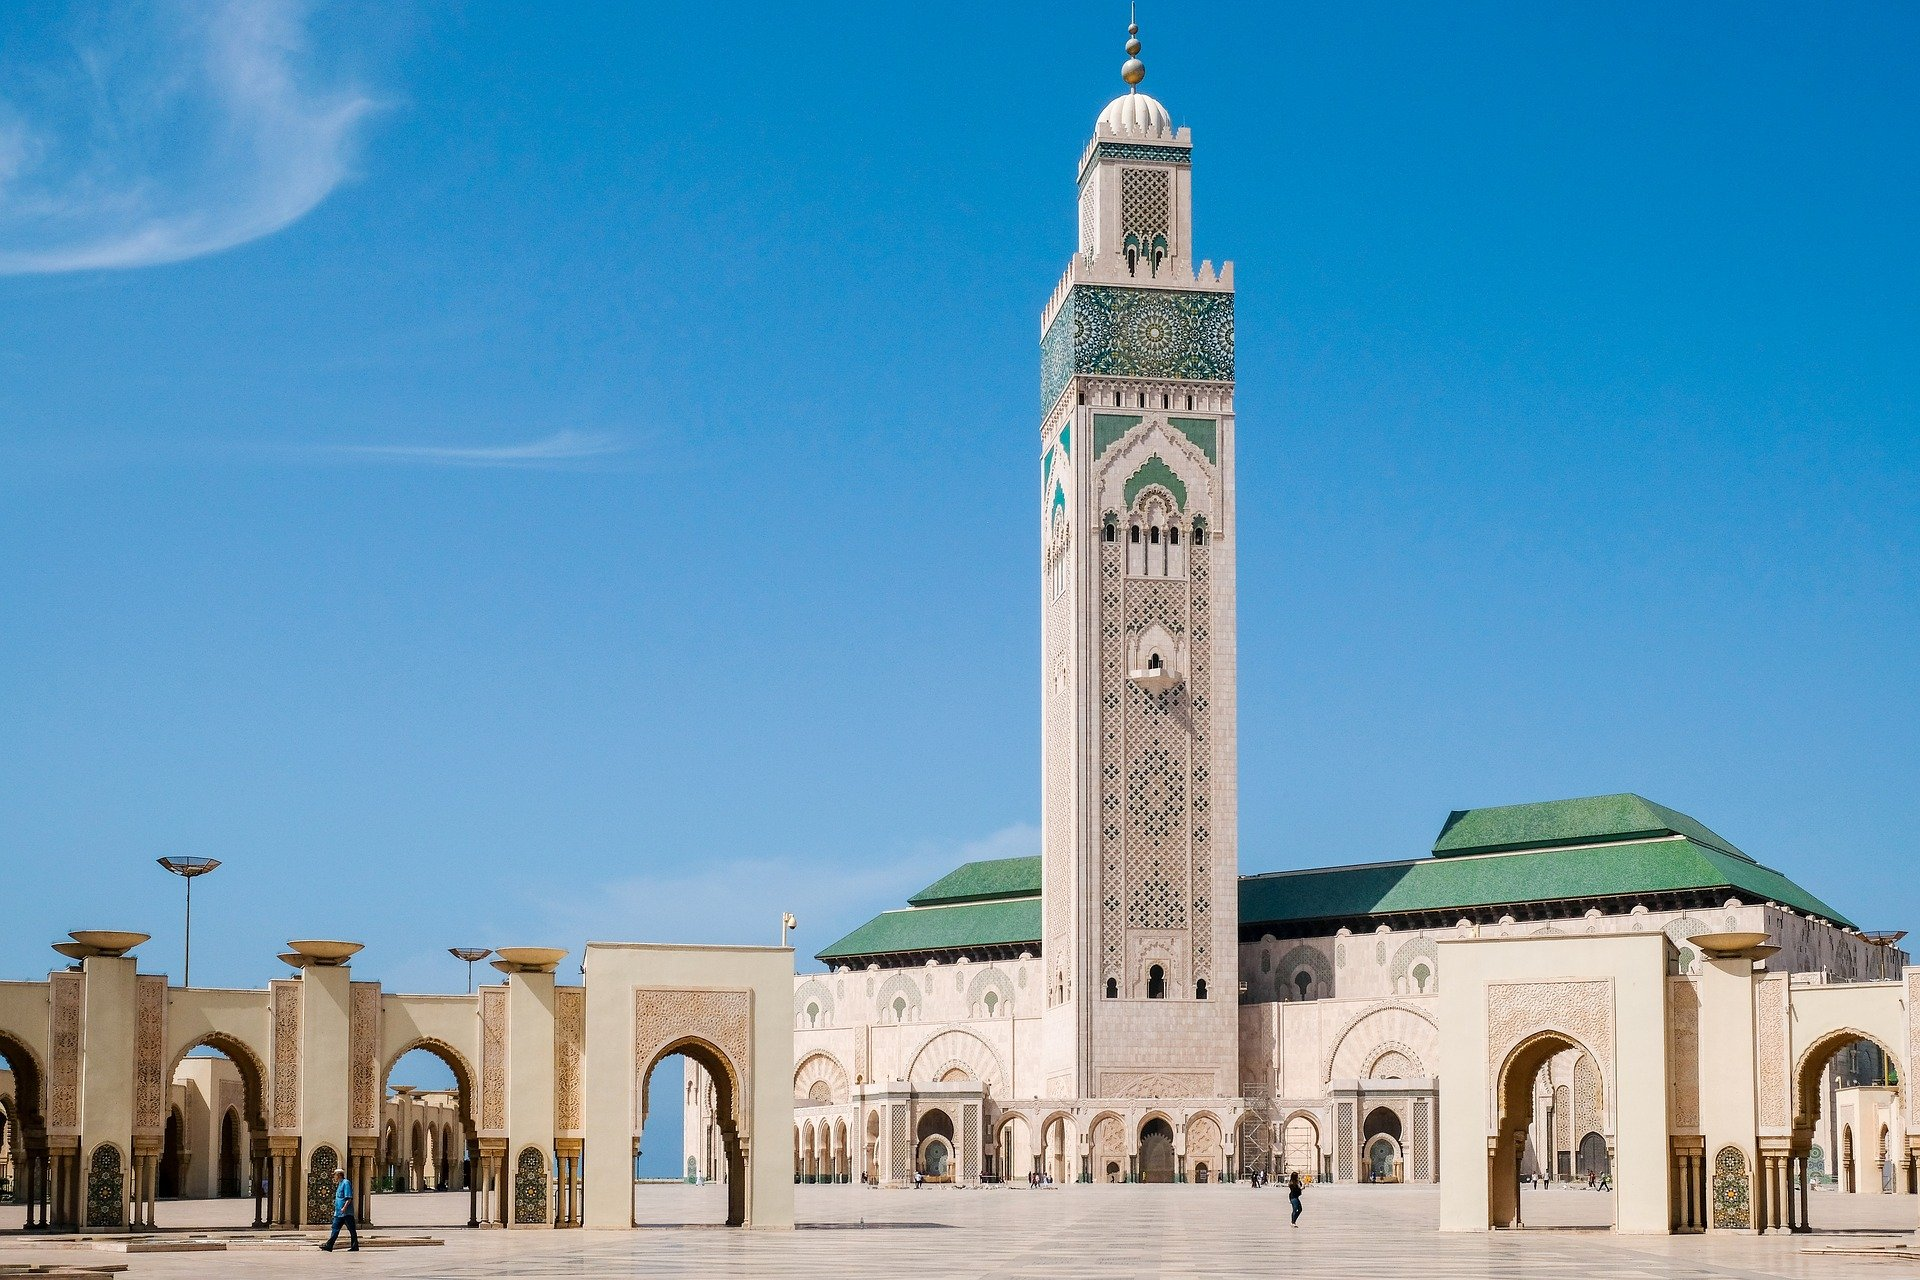 tour to the Hassan II Mosque in Casablanca in the imperial cities tour Morocco